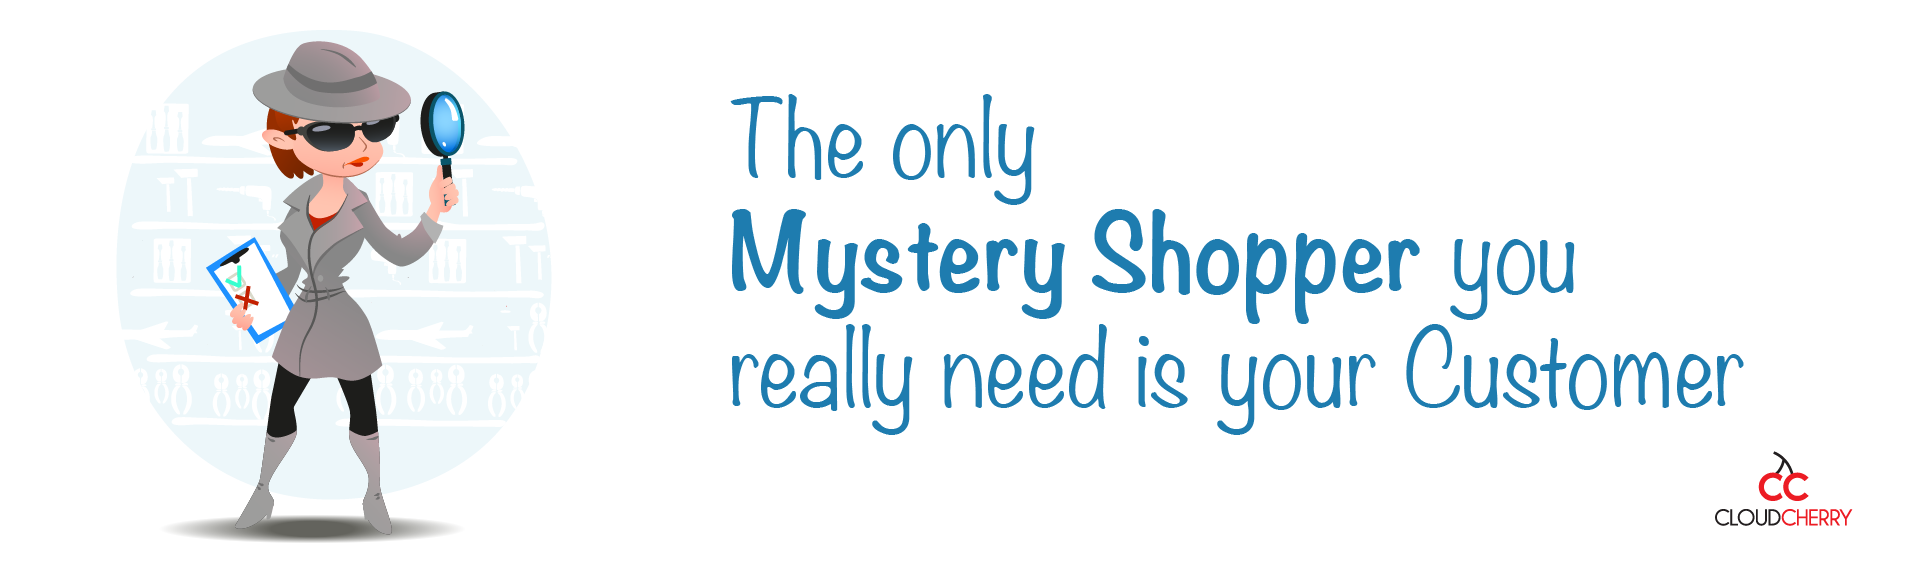 The only Mystery Shopper you really need is your Customer